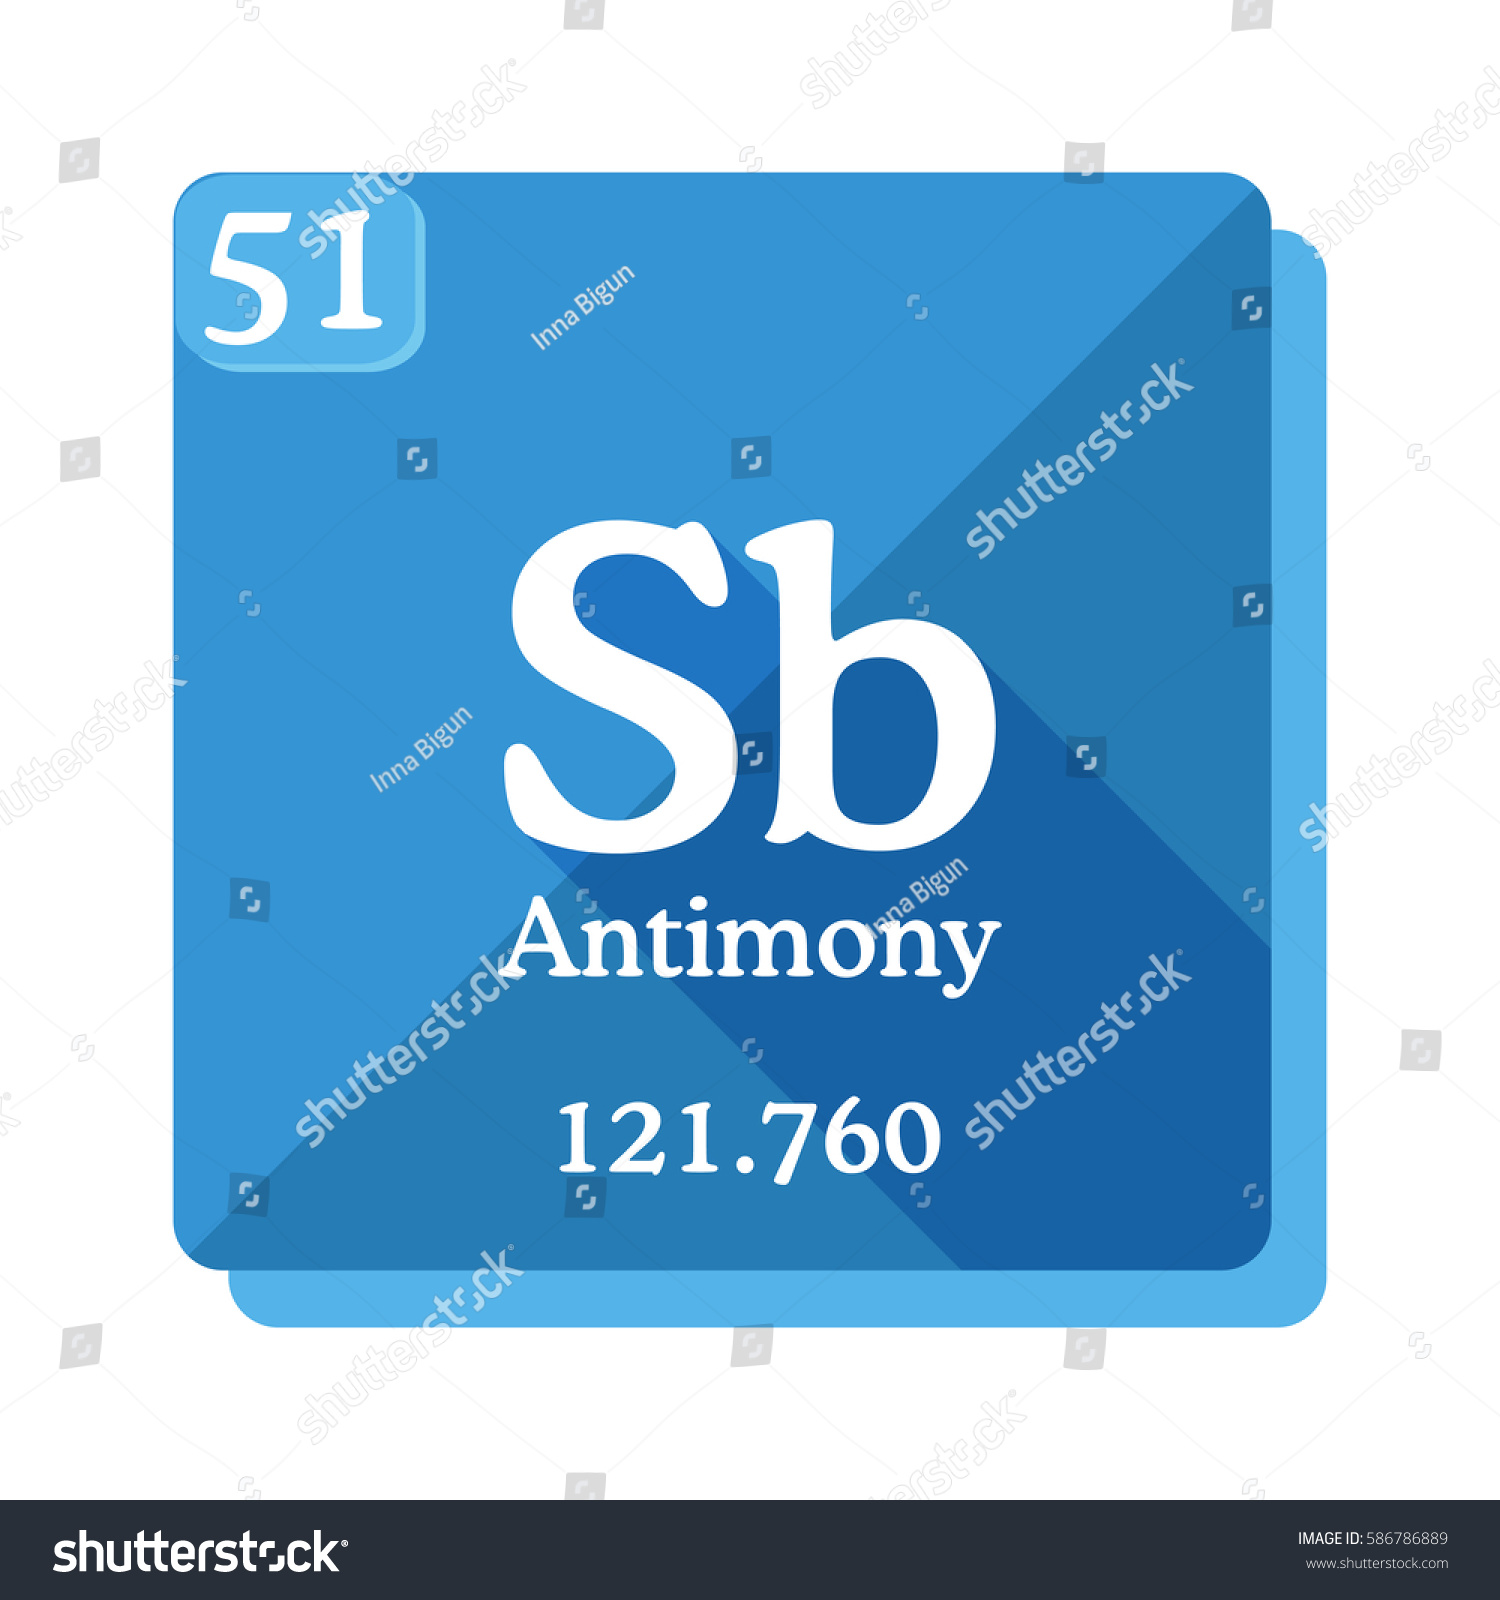 Antimony sb element periodic table flat stock vector 586786889 antimony sb element of the periodic table flat icon with long shadow gamestrikefo Choice Image